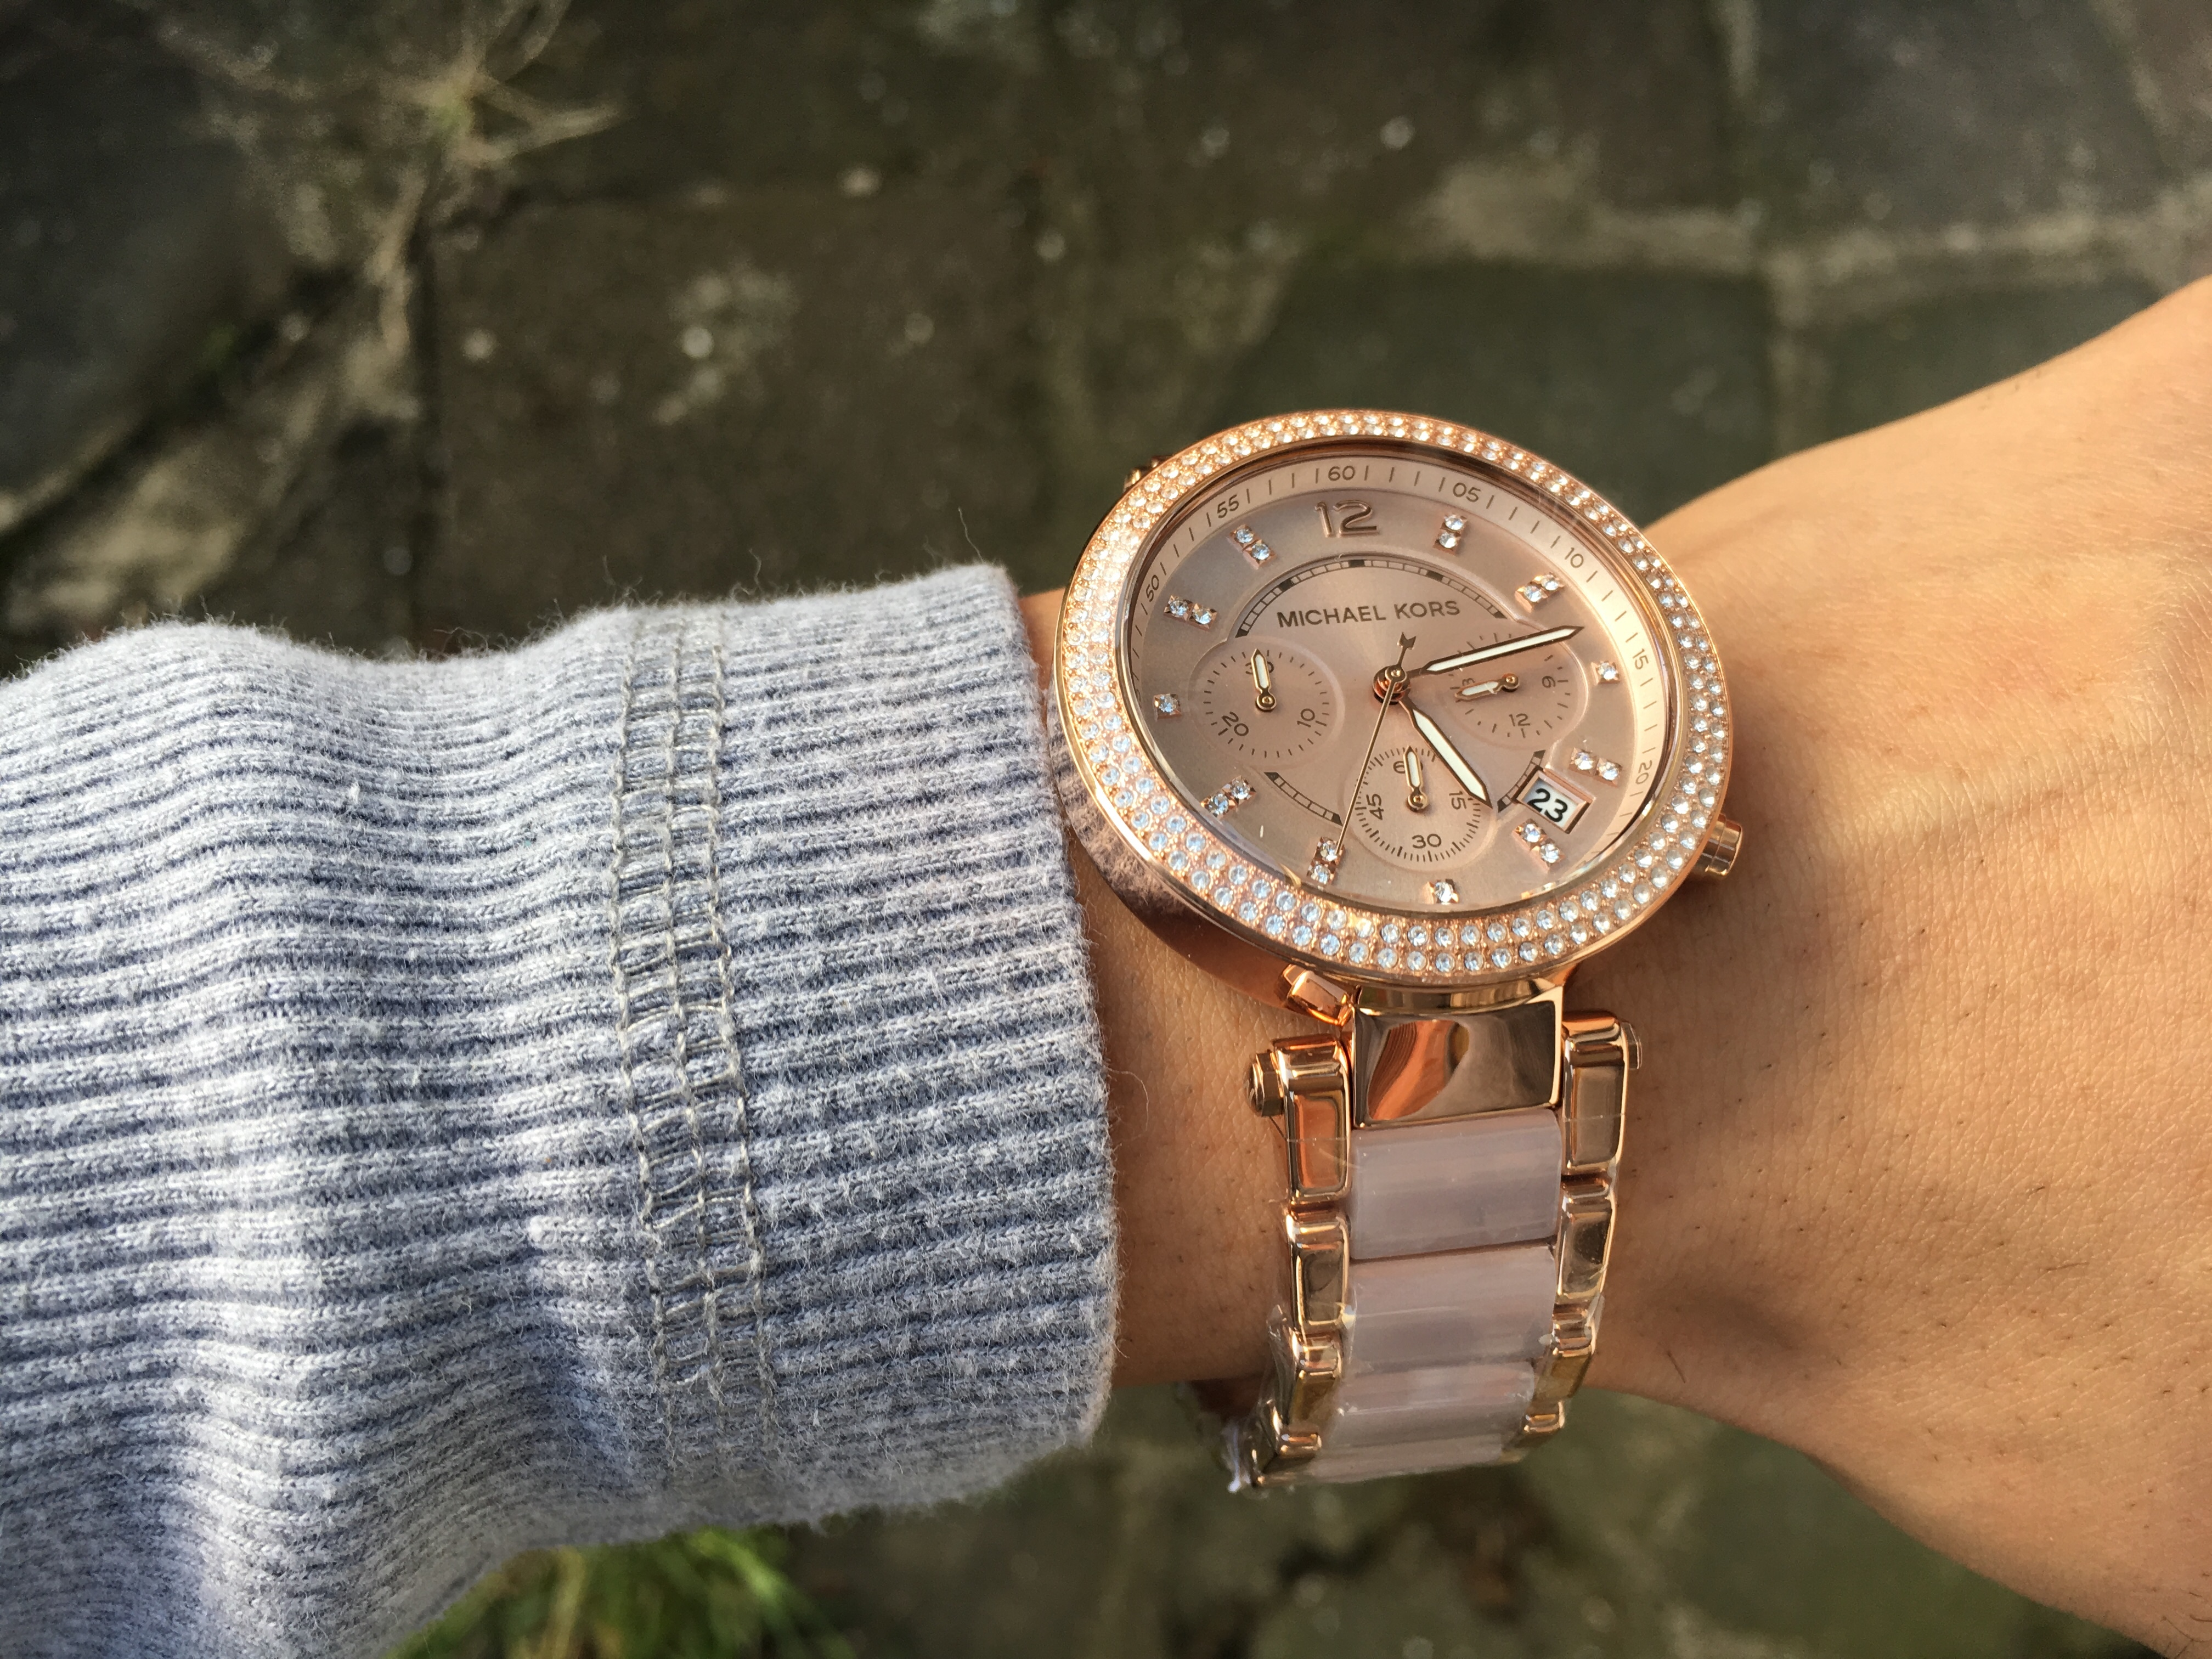 a449cd69854 I spent some time trying to find the perfect watch. I knew I wanted a Michael  Kors watch but we are spoilt for choice as there are so many variants but  in ...